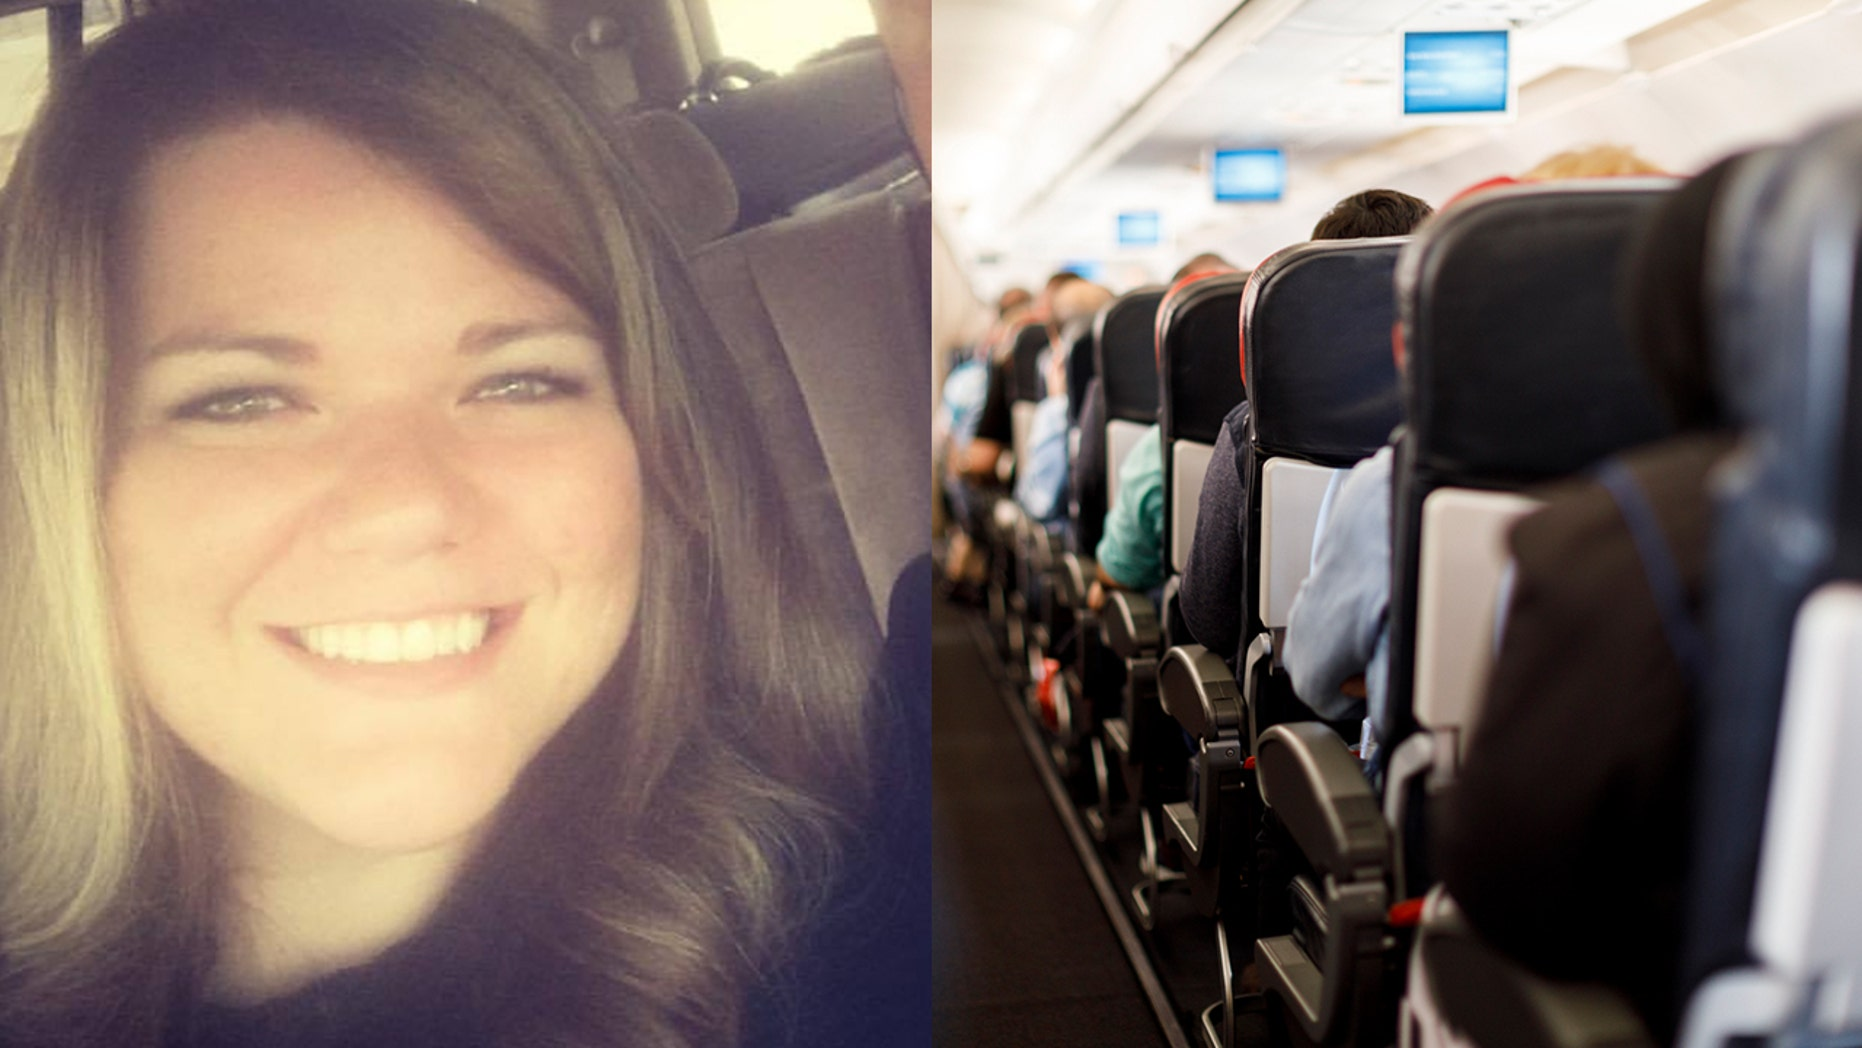 """An Oklahoma woman said a fellow passenger on her flight stepped in to defend her after someone called her a """"smelly fatty."""""""